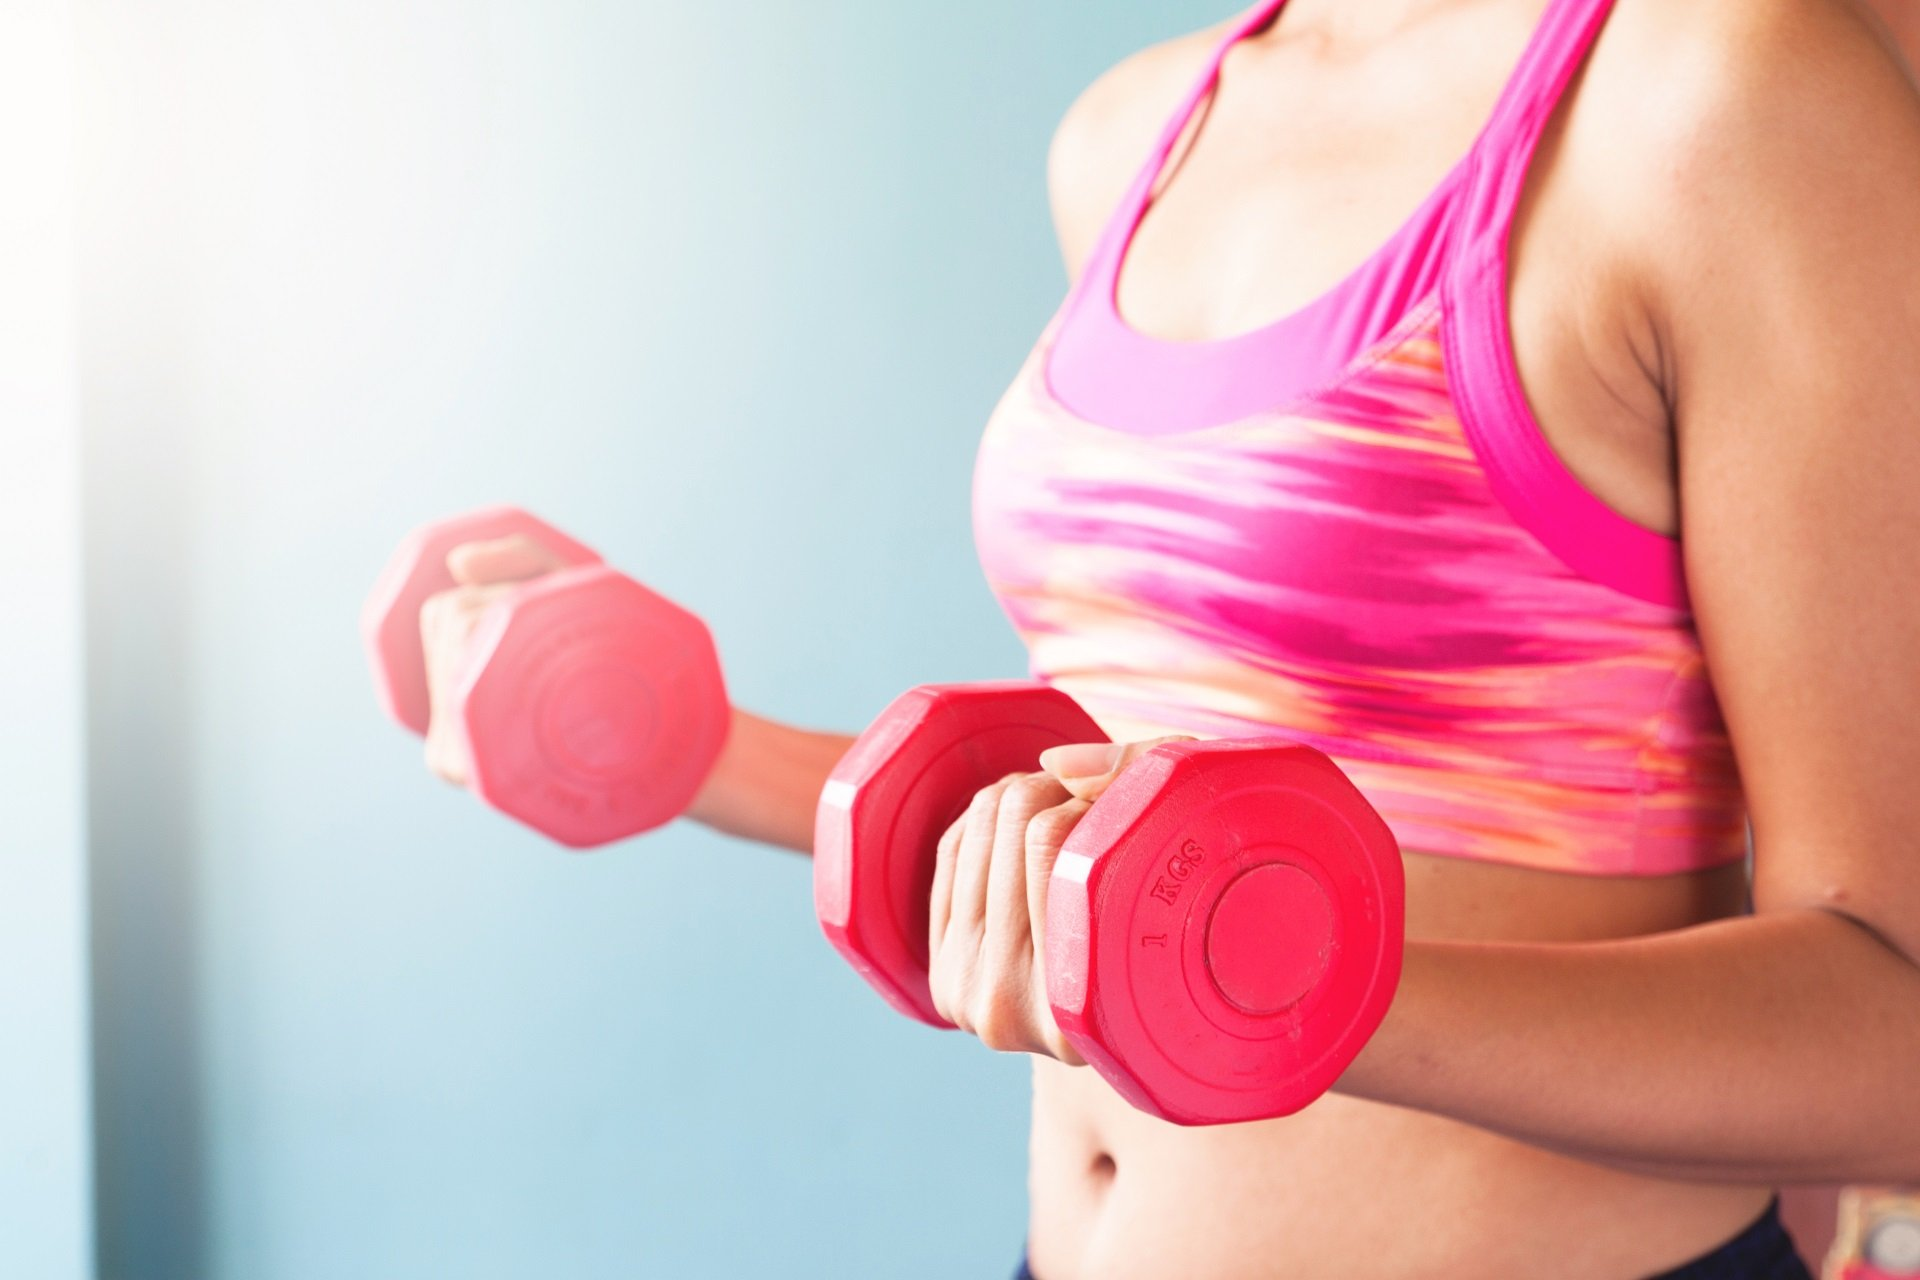 50 At-Home Exercises – Get In Shape Without A Gym   Correxiko - The Collagen Experts